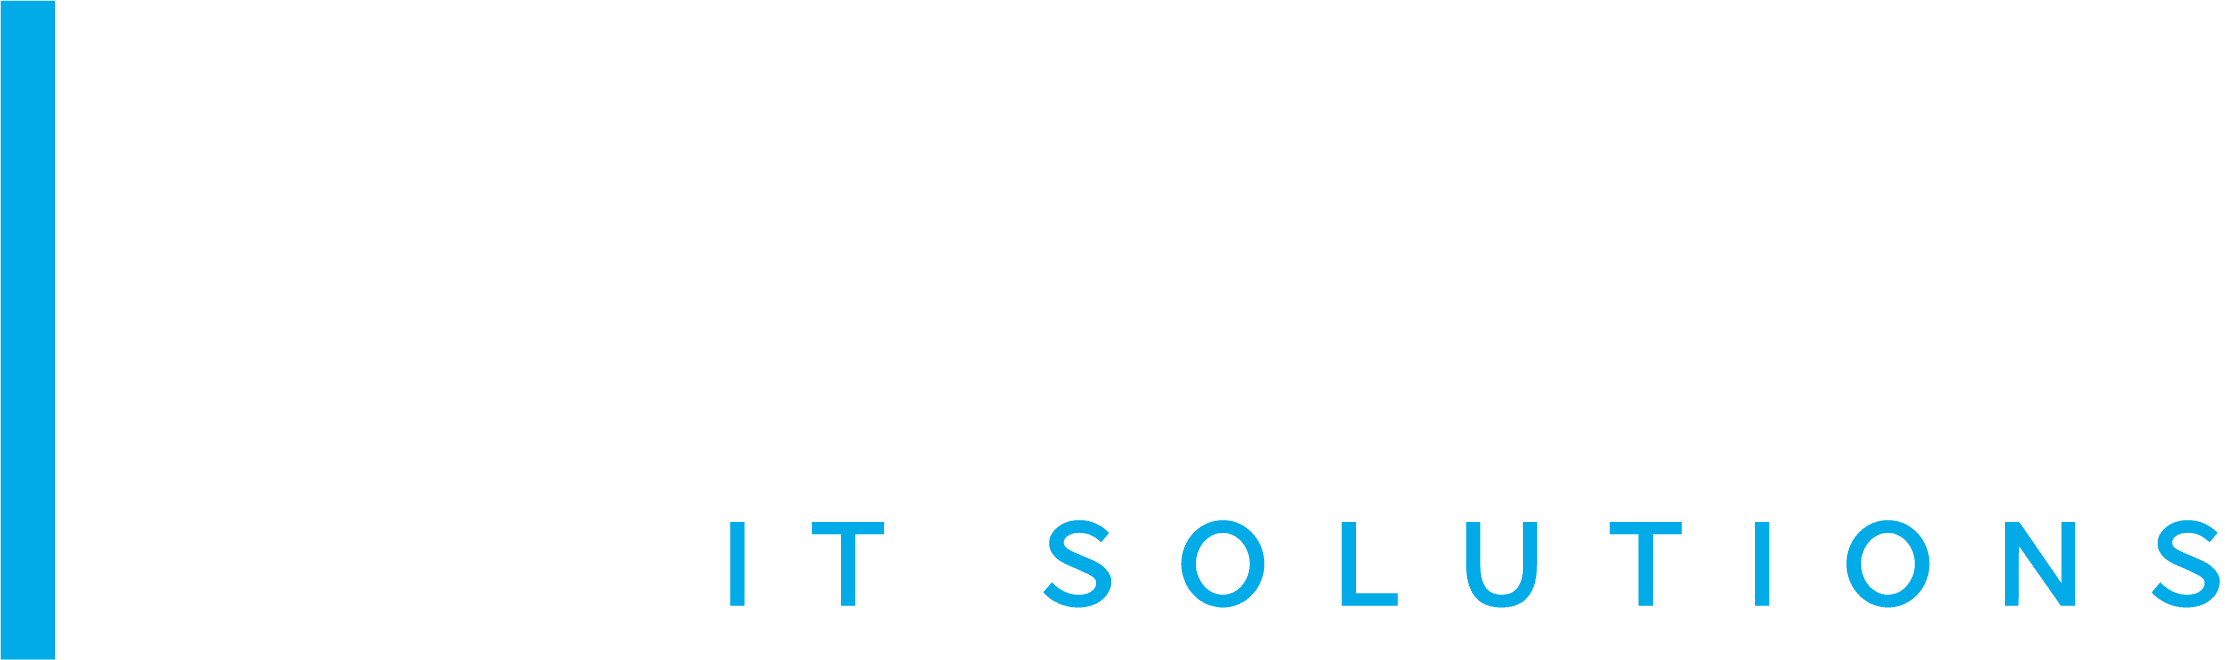 IT Solutions by Truedata